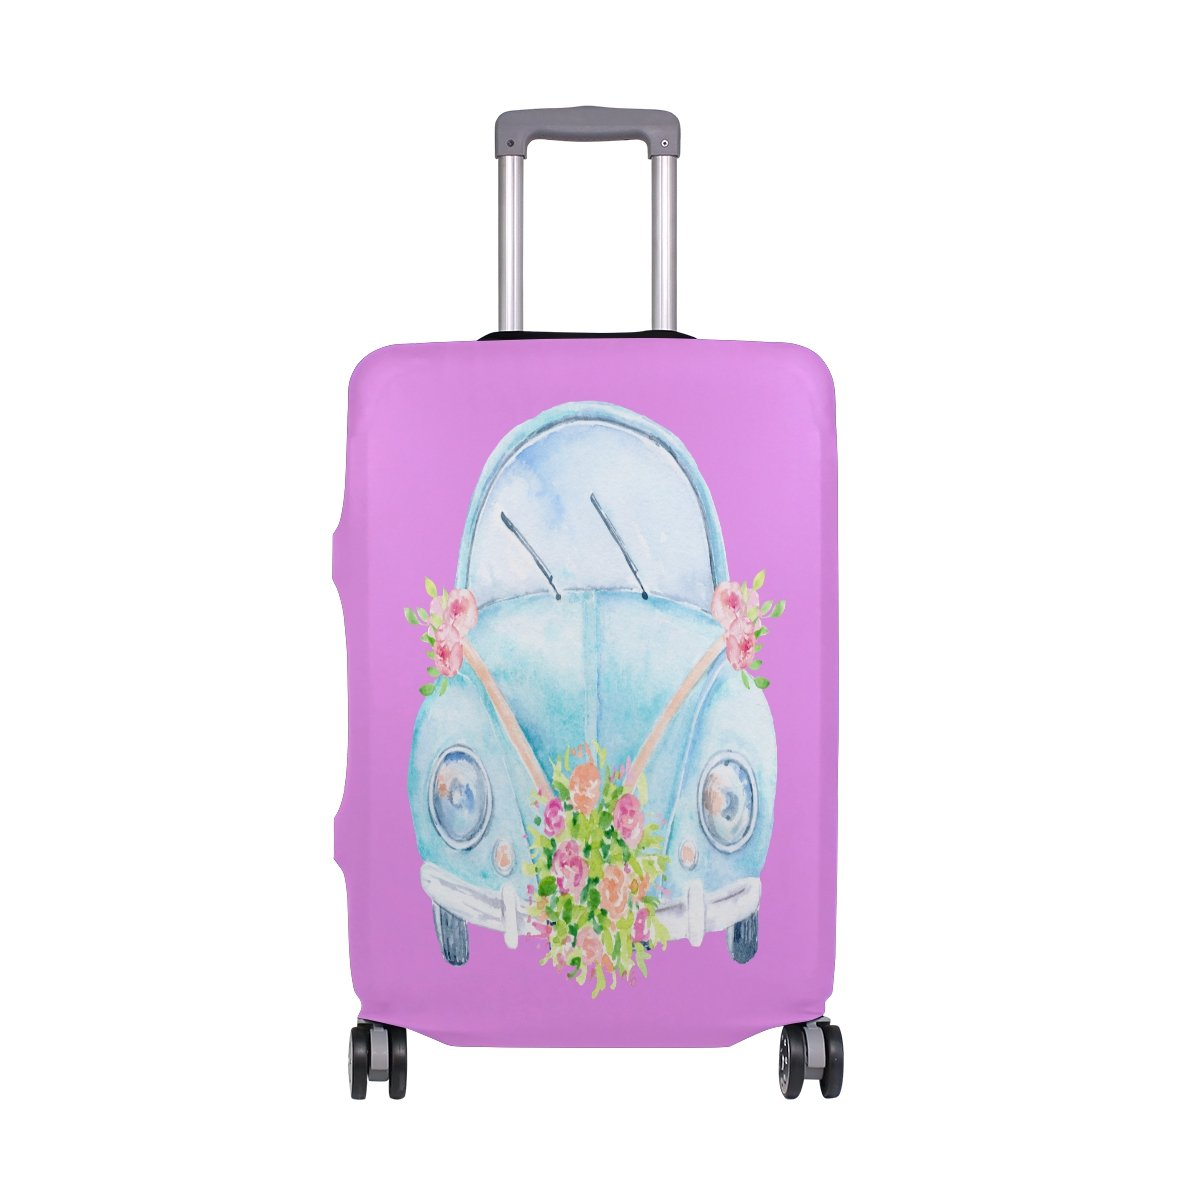 Wedding Car Travel Luggage Cover Washable Spandex Baggage Suitcase Cover Protector Carry On Covers Fits M 22-24 in